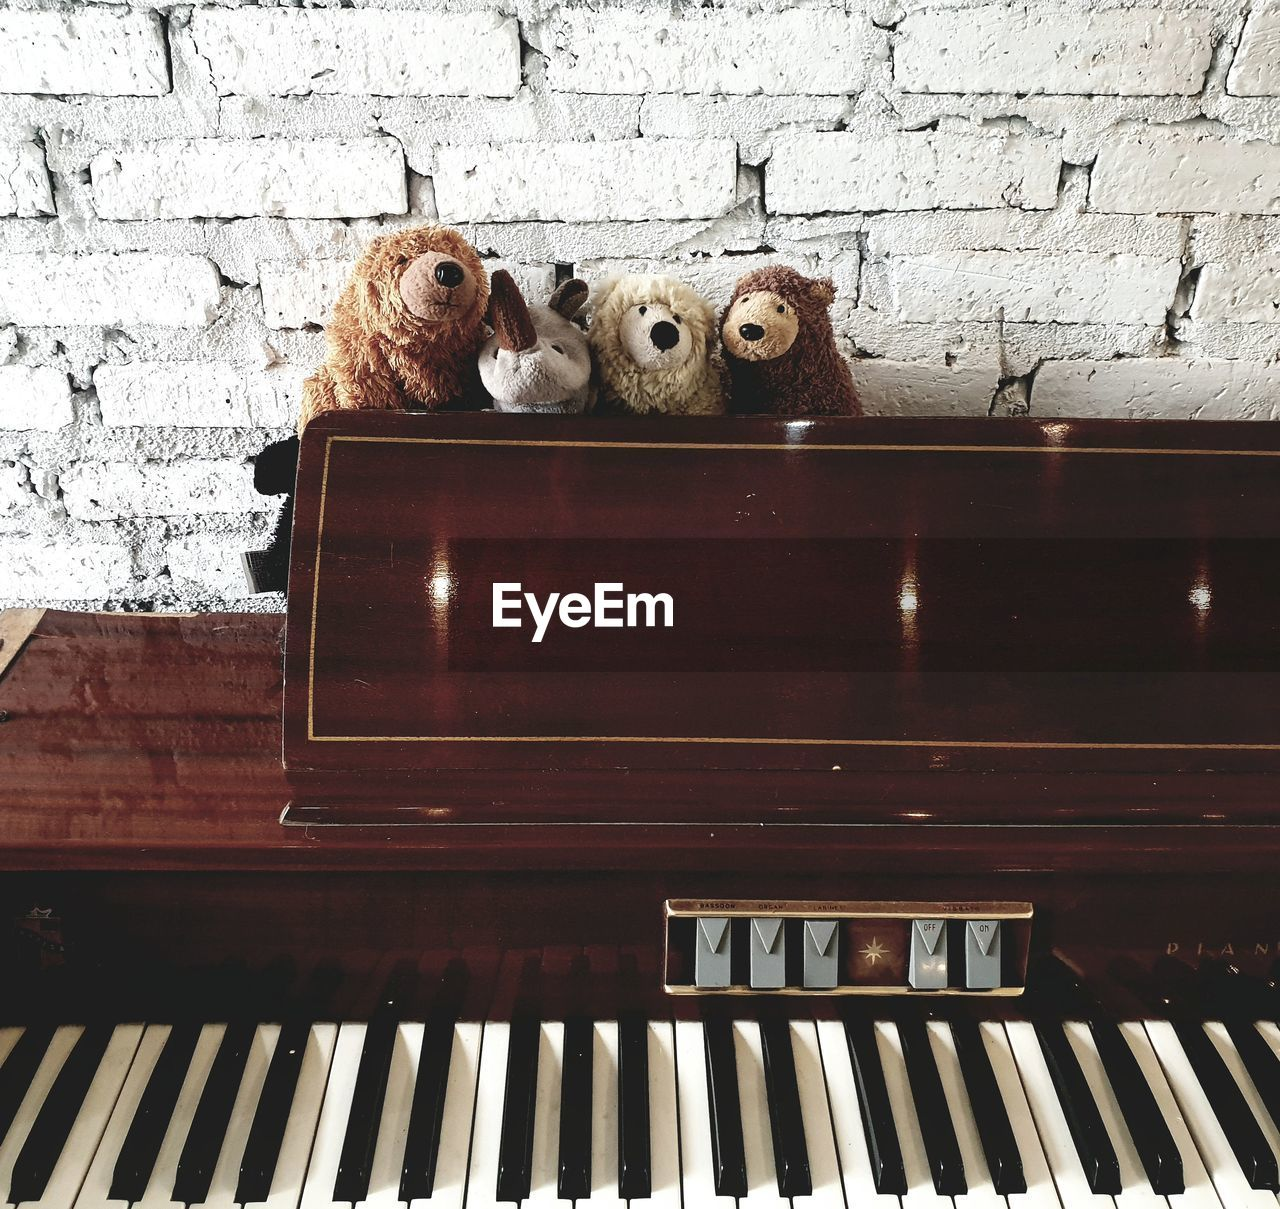 musical equipment, musical instrument, music, animal themes, mammal, animal, piano, arts culture and entertainment, domestic, pets, domestic animals, piano key, one animal, no people, cat, wood - material, vertebrate, domestic cat, indoors, feline, animal head, keyboard, keyboard instrument